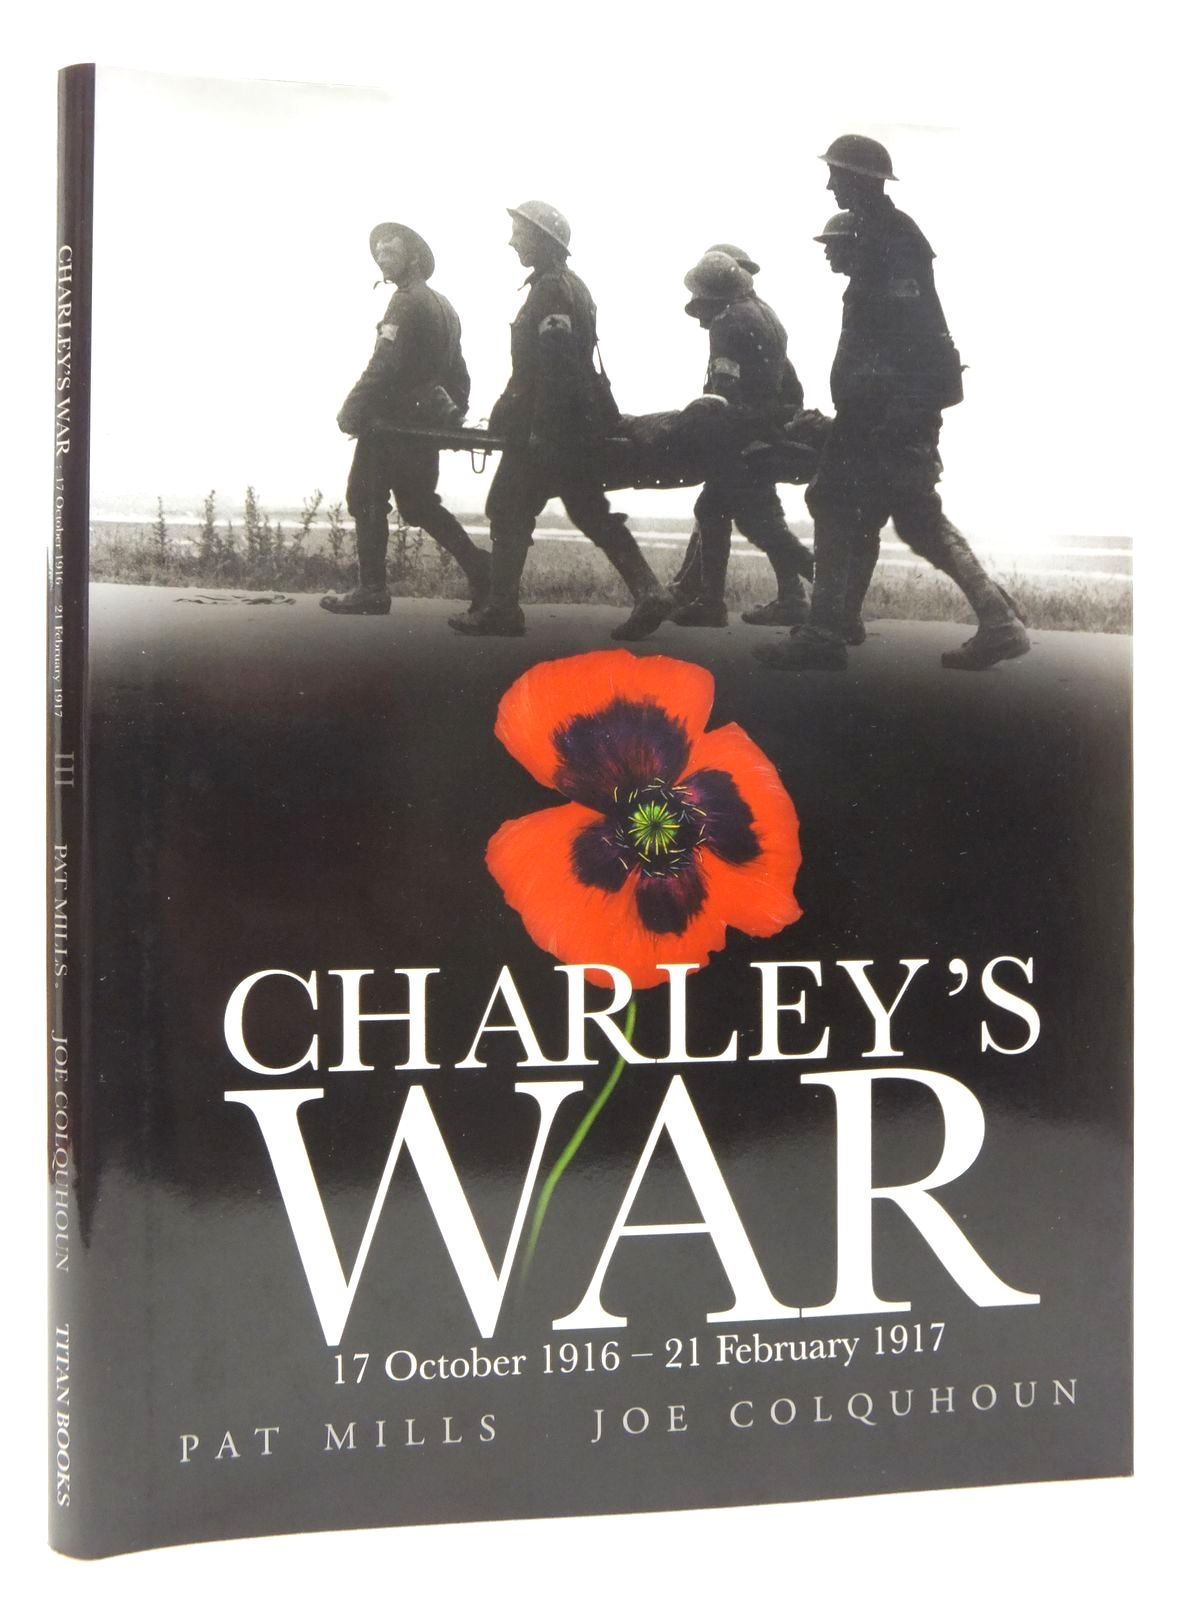 Photo of CHARLEY'S WAR 17 OCTOBER 1916 - 21 FEBRUARY 1917 written by Mills, Pat illustrated by Colquhoun, Joe published by Titan Books (STOCK CODE: 2123459)  for sale by Stella & Rose's Books